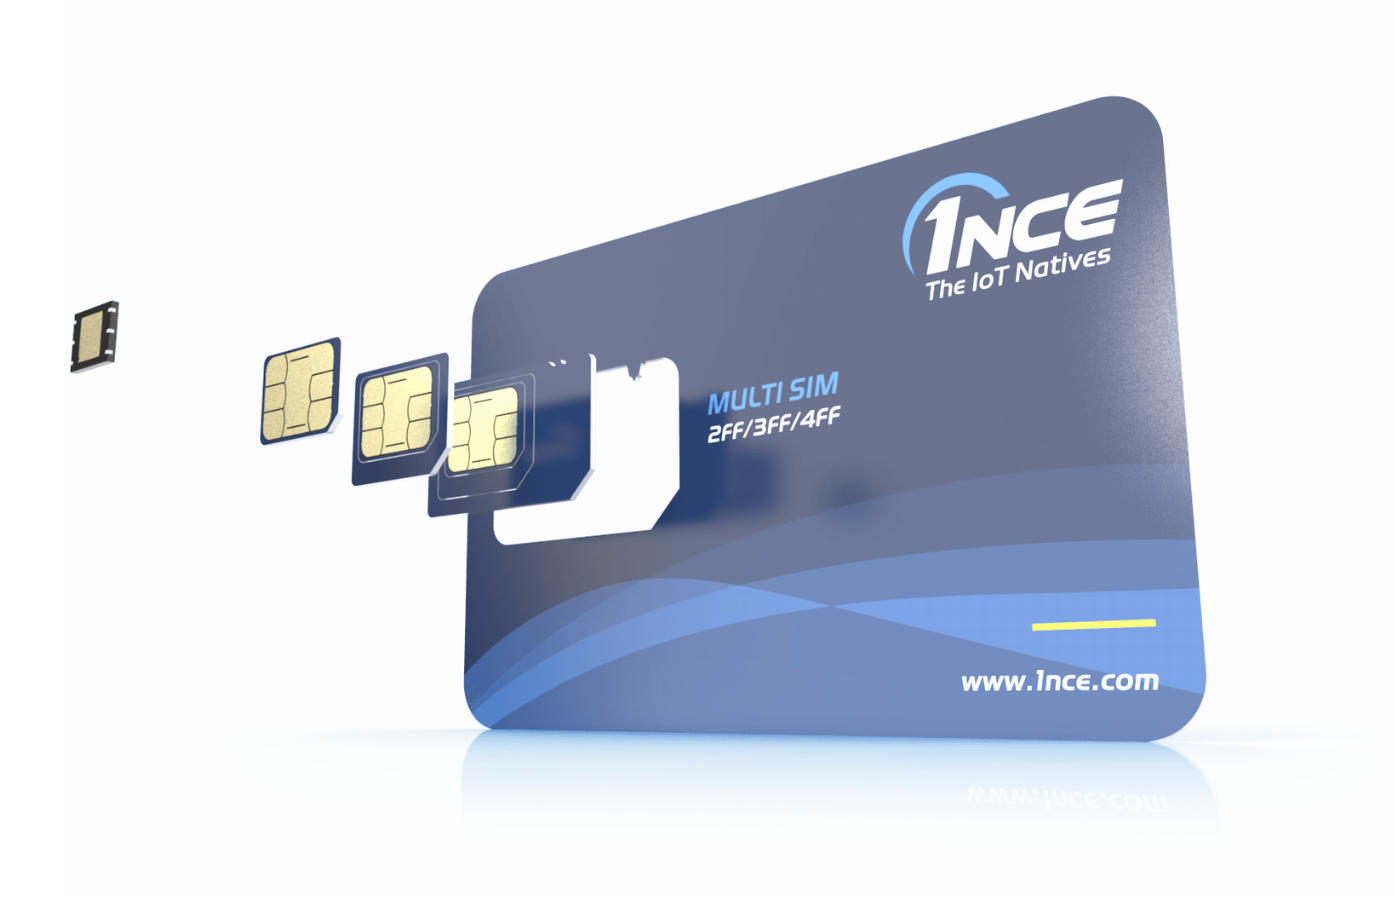 1NCE extends IoT coverage to 103 countries